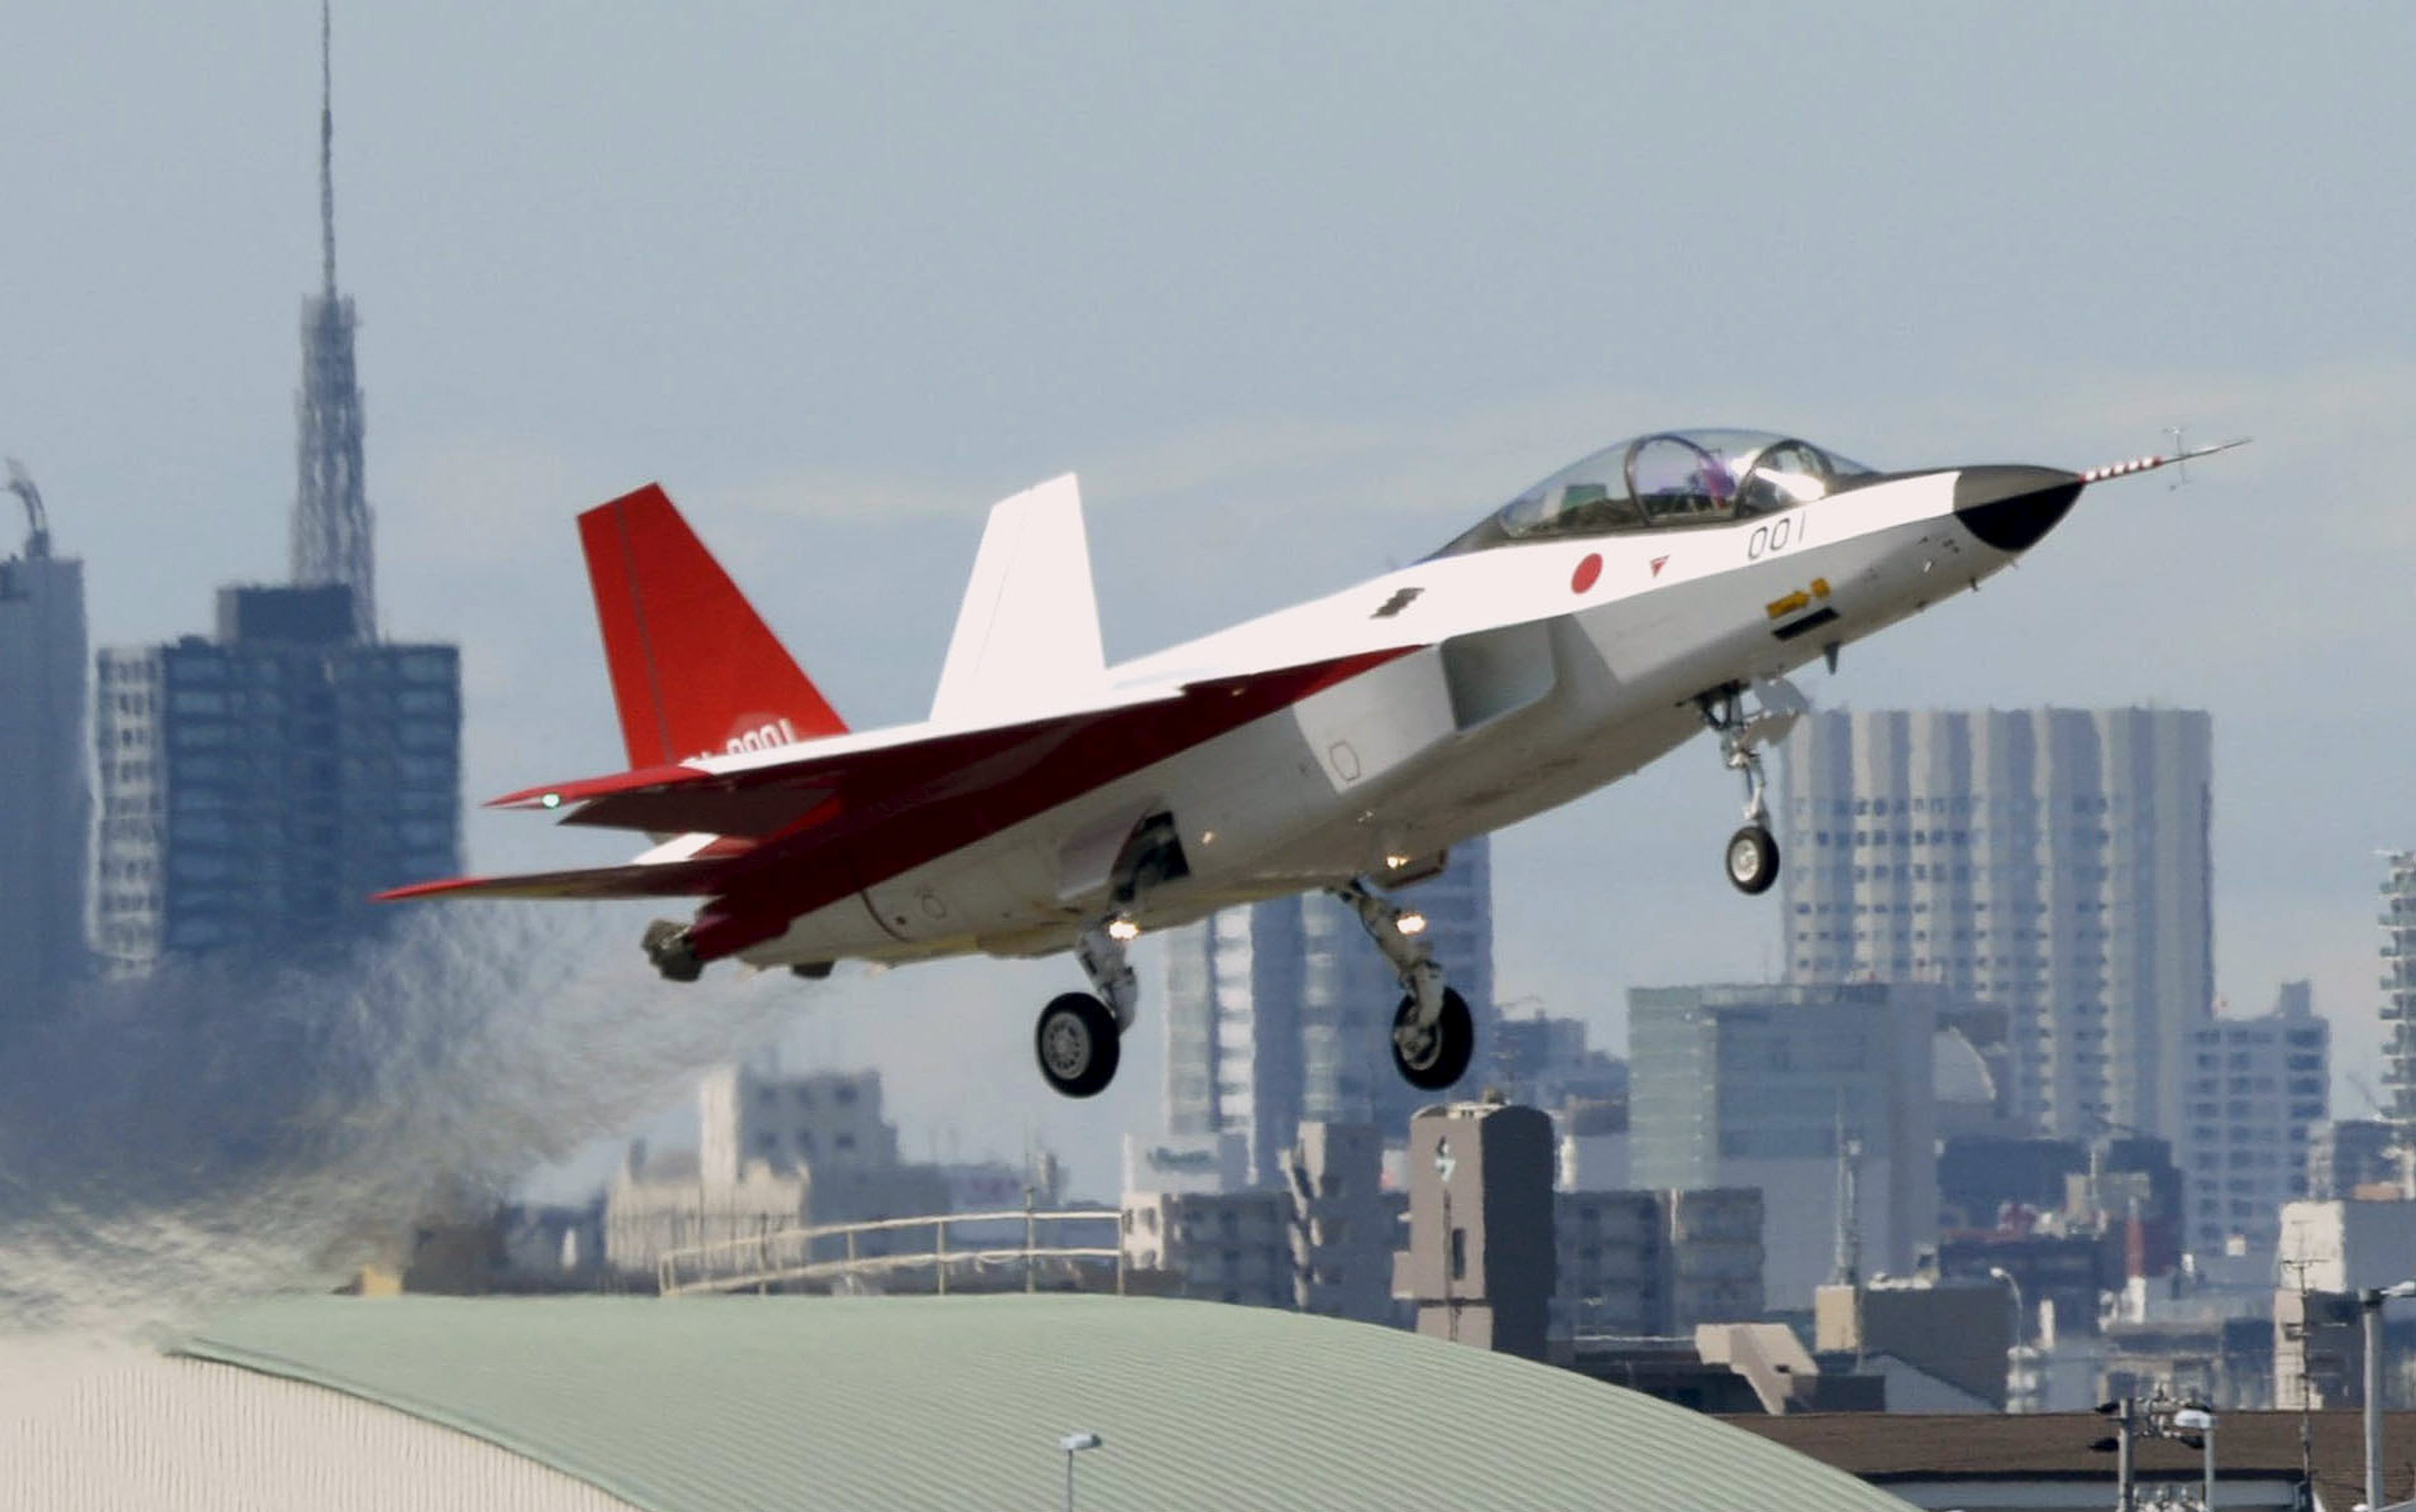 A prototype of the first Japan-made stealth fighter X-2 Shinshin, formerly called ATD-X